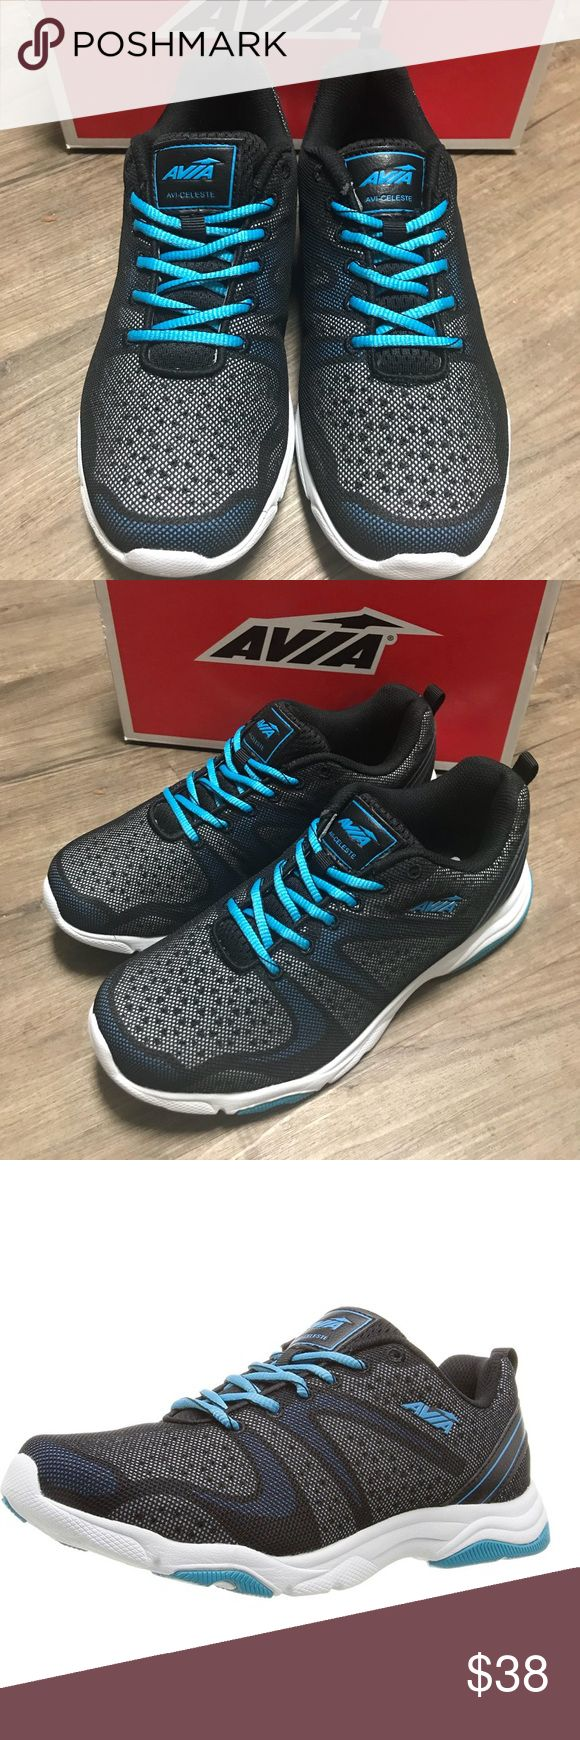 NWT Avia Crosstrainer Shoes ⚽️🏀⚾️🎾 Xmas present! NWT! This is my favorite brand of cross trainers because they are the most comfortable shoes for any type of sport you're into! Zumba? Tennis? Running? These are the shoes! With Gelfom that's a formulated foam sockliner. Very soft and versatile! Colors are: light blue, white, black and gray Avia Shoes Athletic Shoes